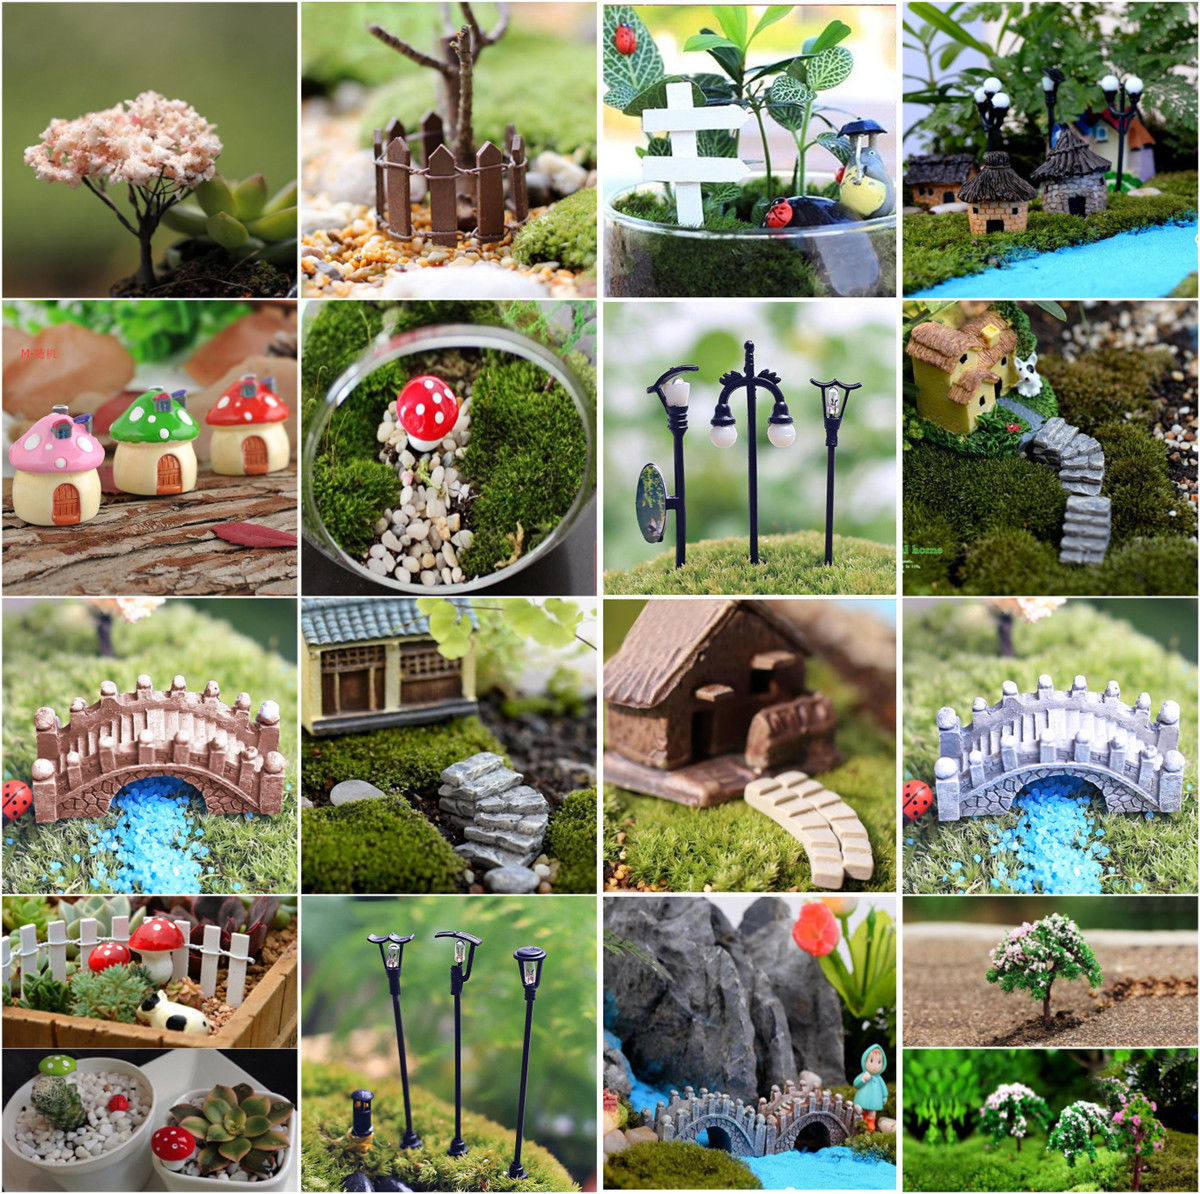 Mini Sdivaight Bending Bridge House Mushrooms Fence Craft Figurine Plant Pot Garden Ornament Miniature DIY Fairy Garden Supplies